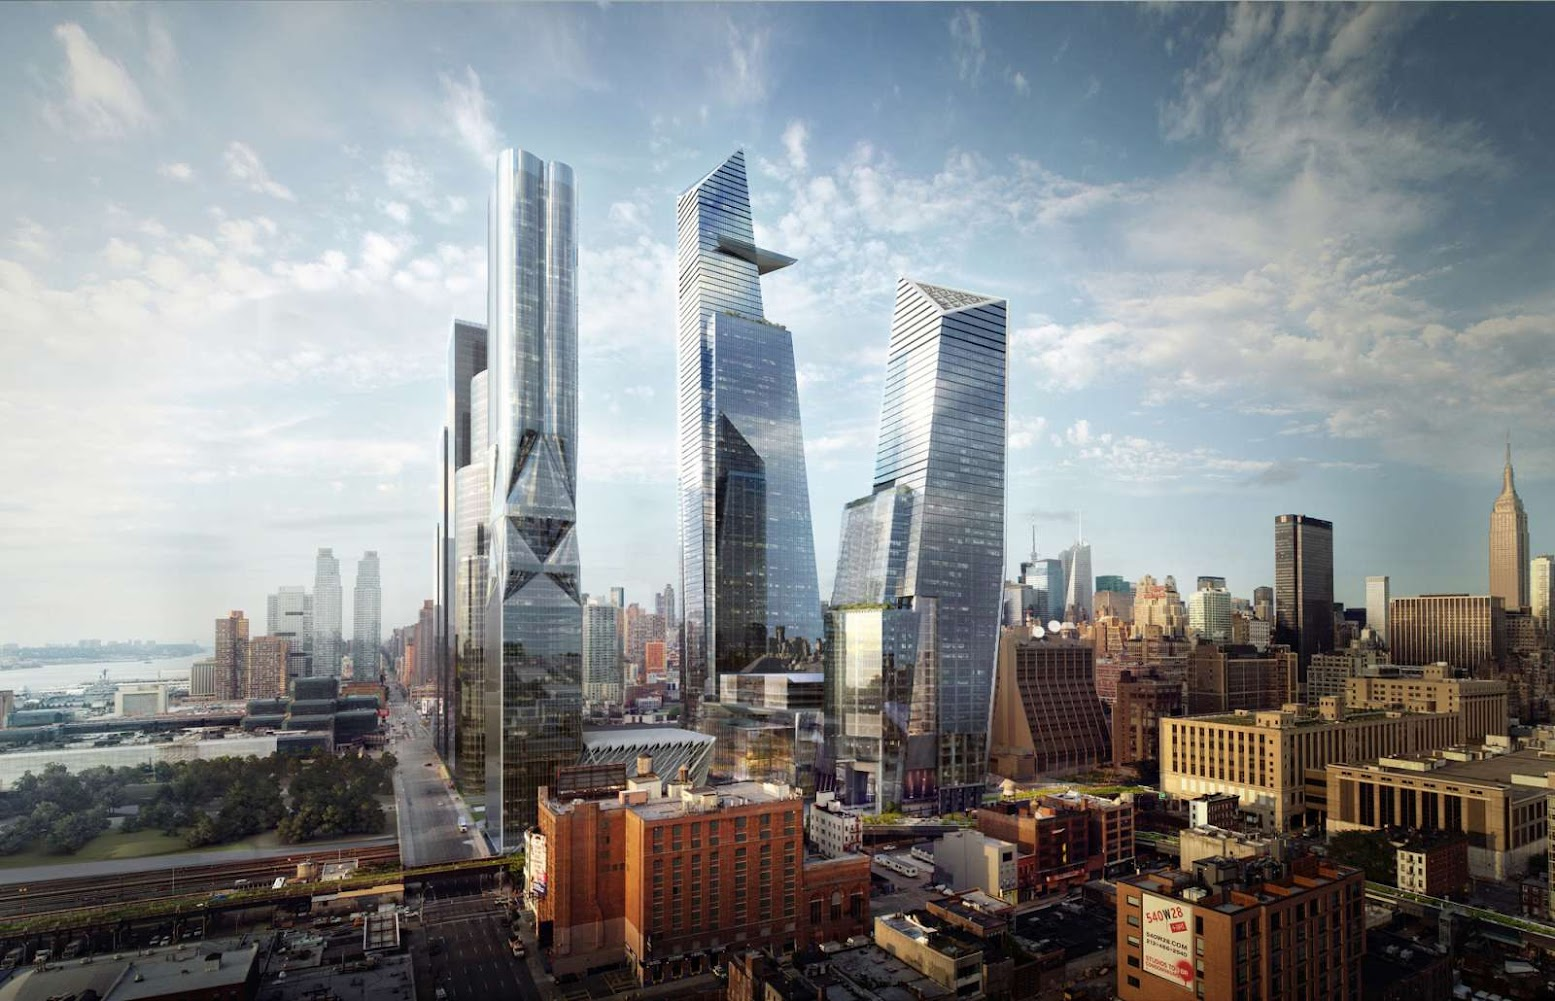 Manhattan West, New York, 10001, Stati Uniti: [HUDSON YARDS PROJECT BREAKS GROUND]